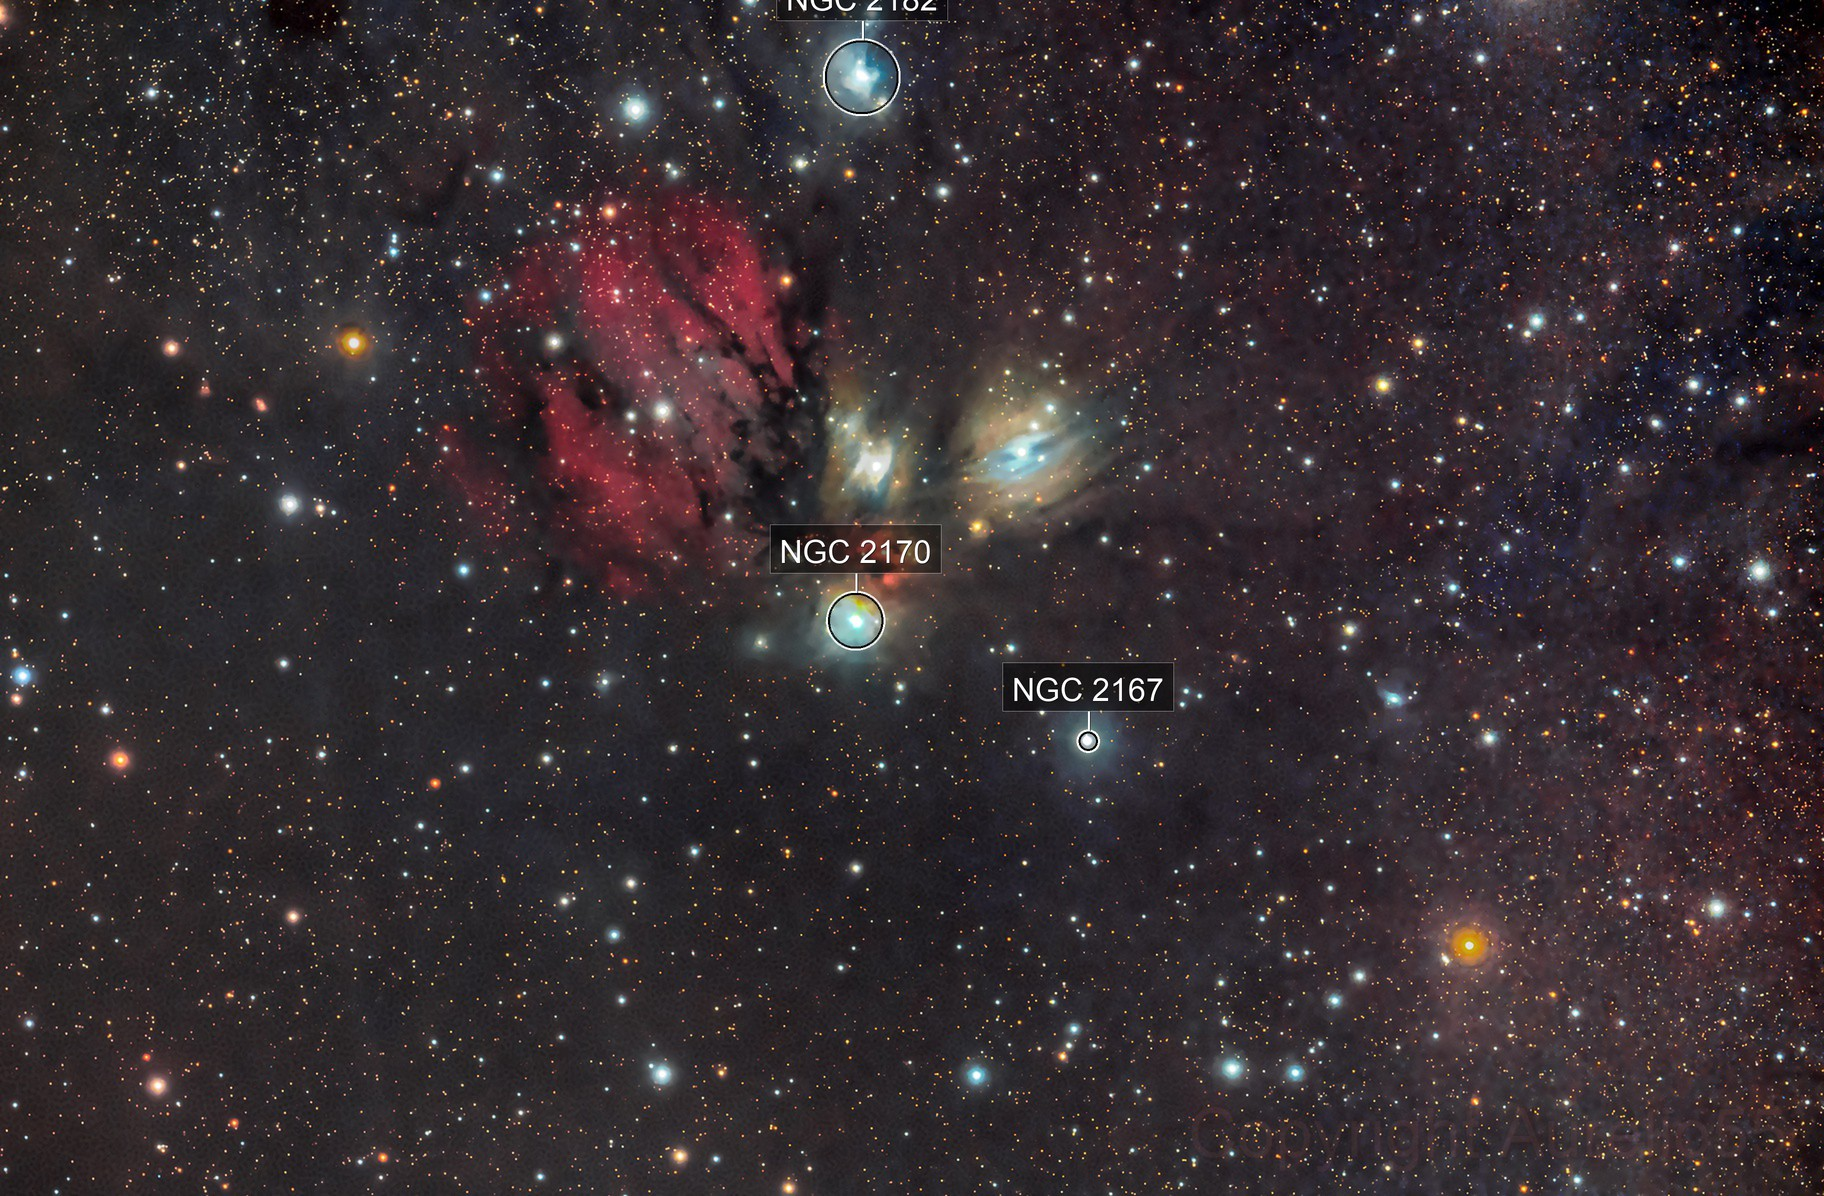 NGC 2170 integrated with H-alpha